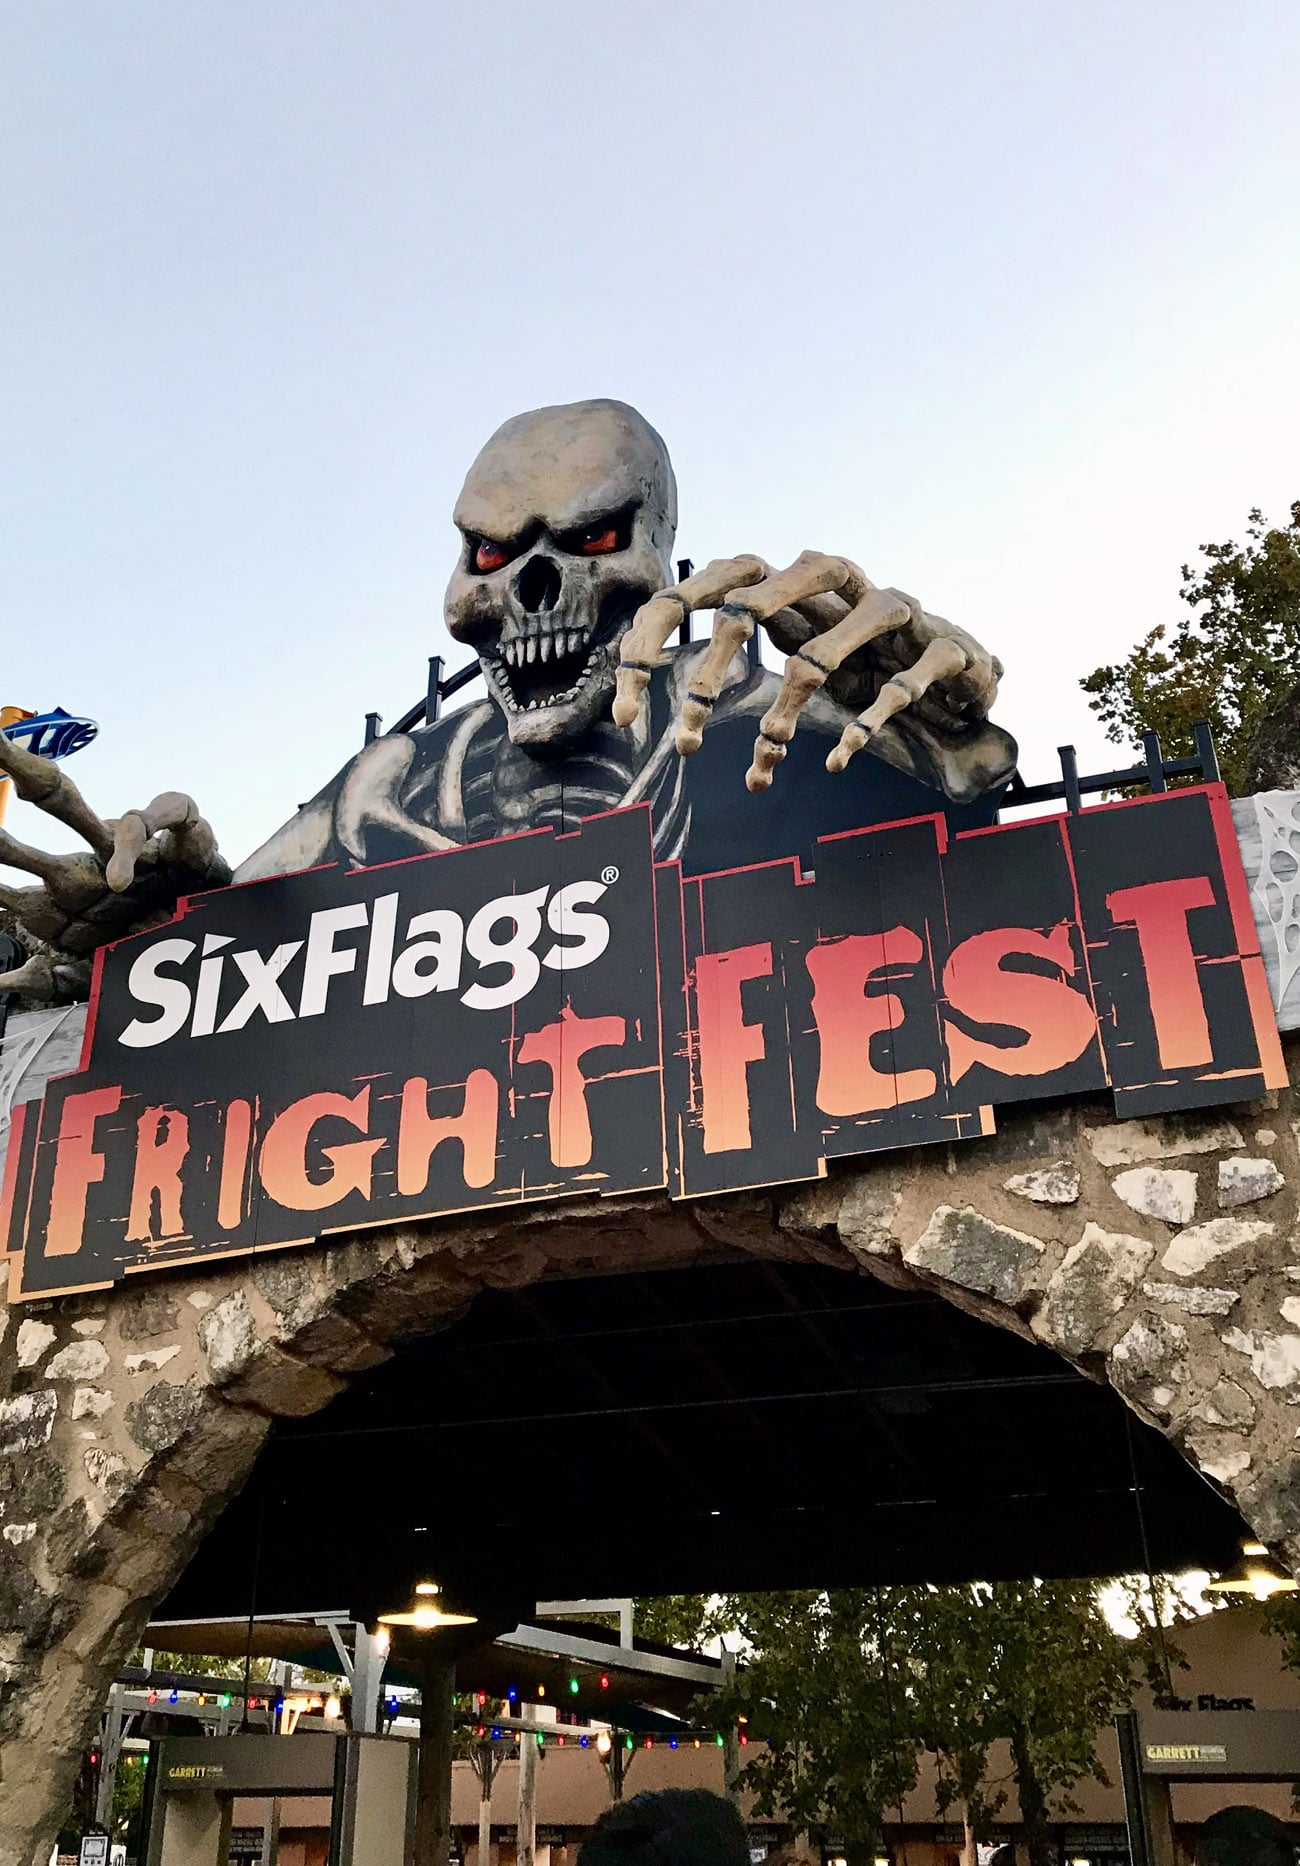 """Traveling to San Antonio, Texas? Or maybe you already live there and are looking for something fun and fresh to do?I ordered the """"San Antonio Explorer Pass"""" via TripAdvisor and got to visit Six Flags, the Guinness World Records Museum, and Ripley's Haunted Adventure!"""